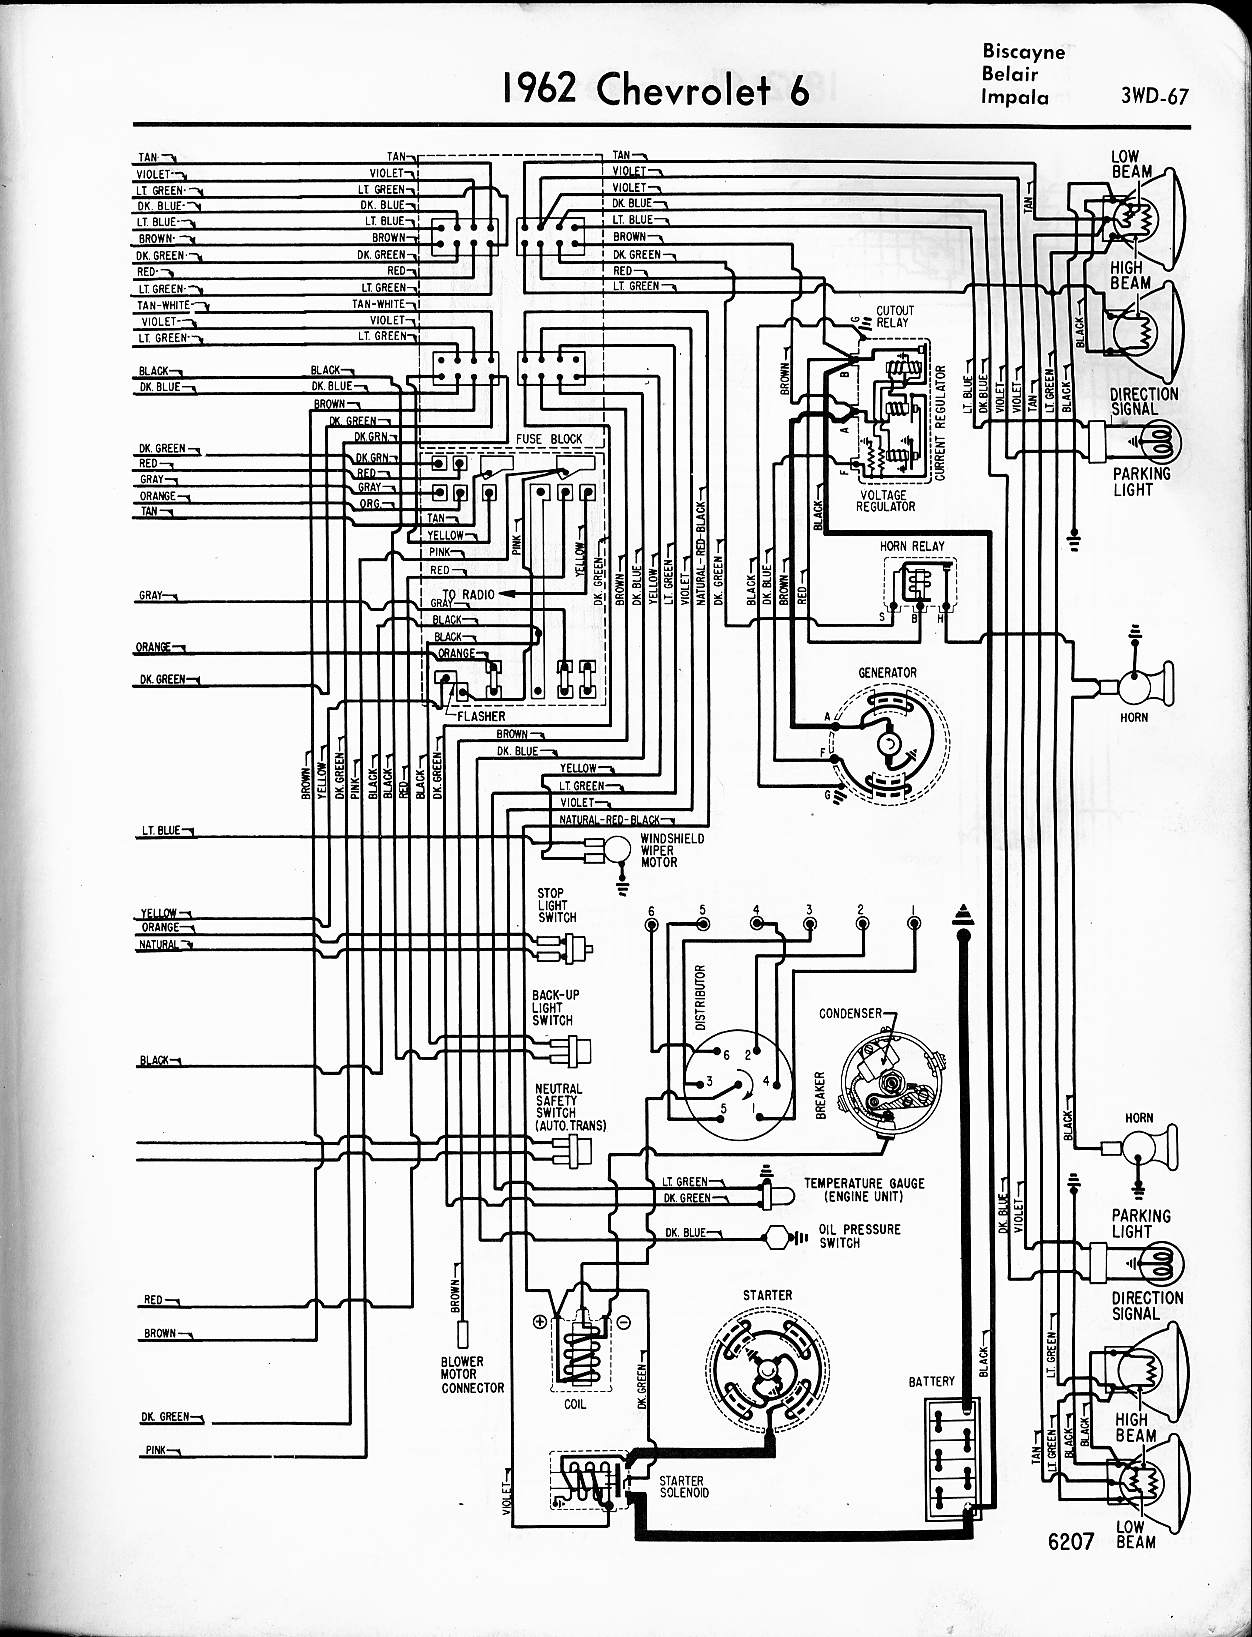 57 chevy wiring diagram wiring diagram and schematic design 3 wire trailer tail light wiring diagrams tow diagram peterbilt wiring diagrams 57 chevy diagram